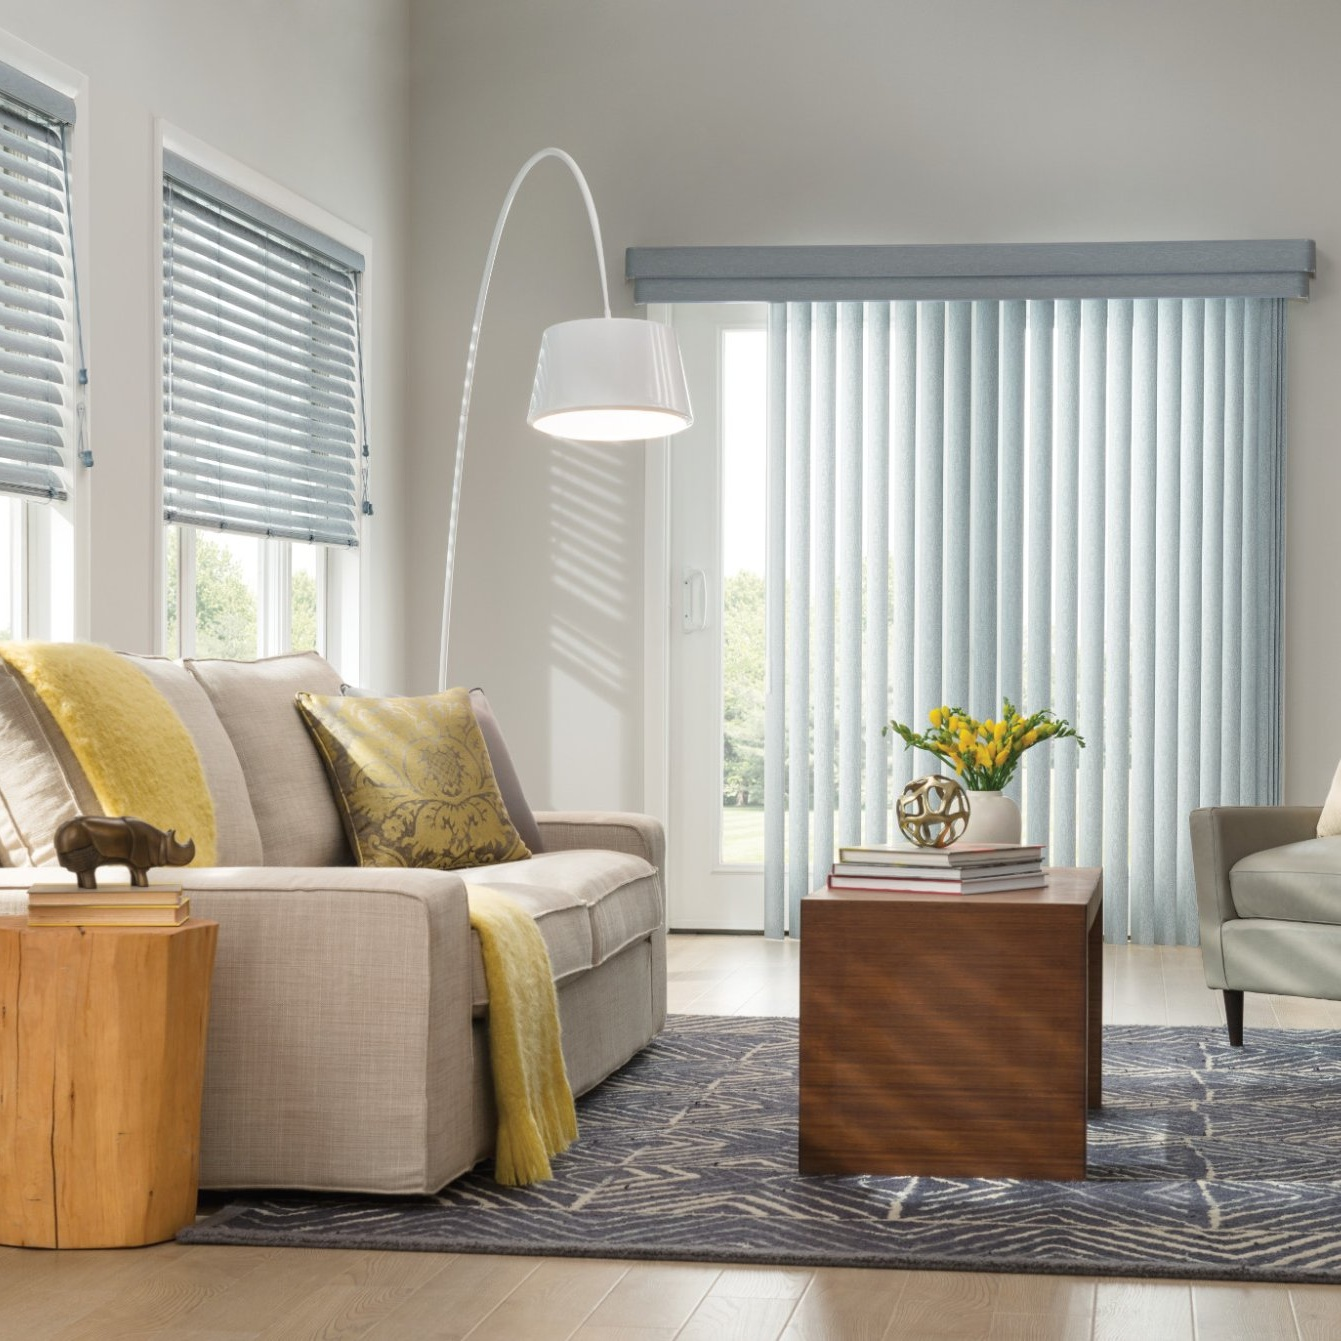 Blinds - Save up to 70% on Blinds and VerticalsNorman - Universal - Hunter